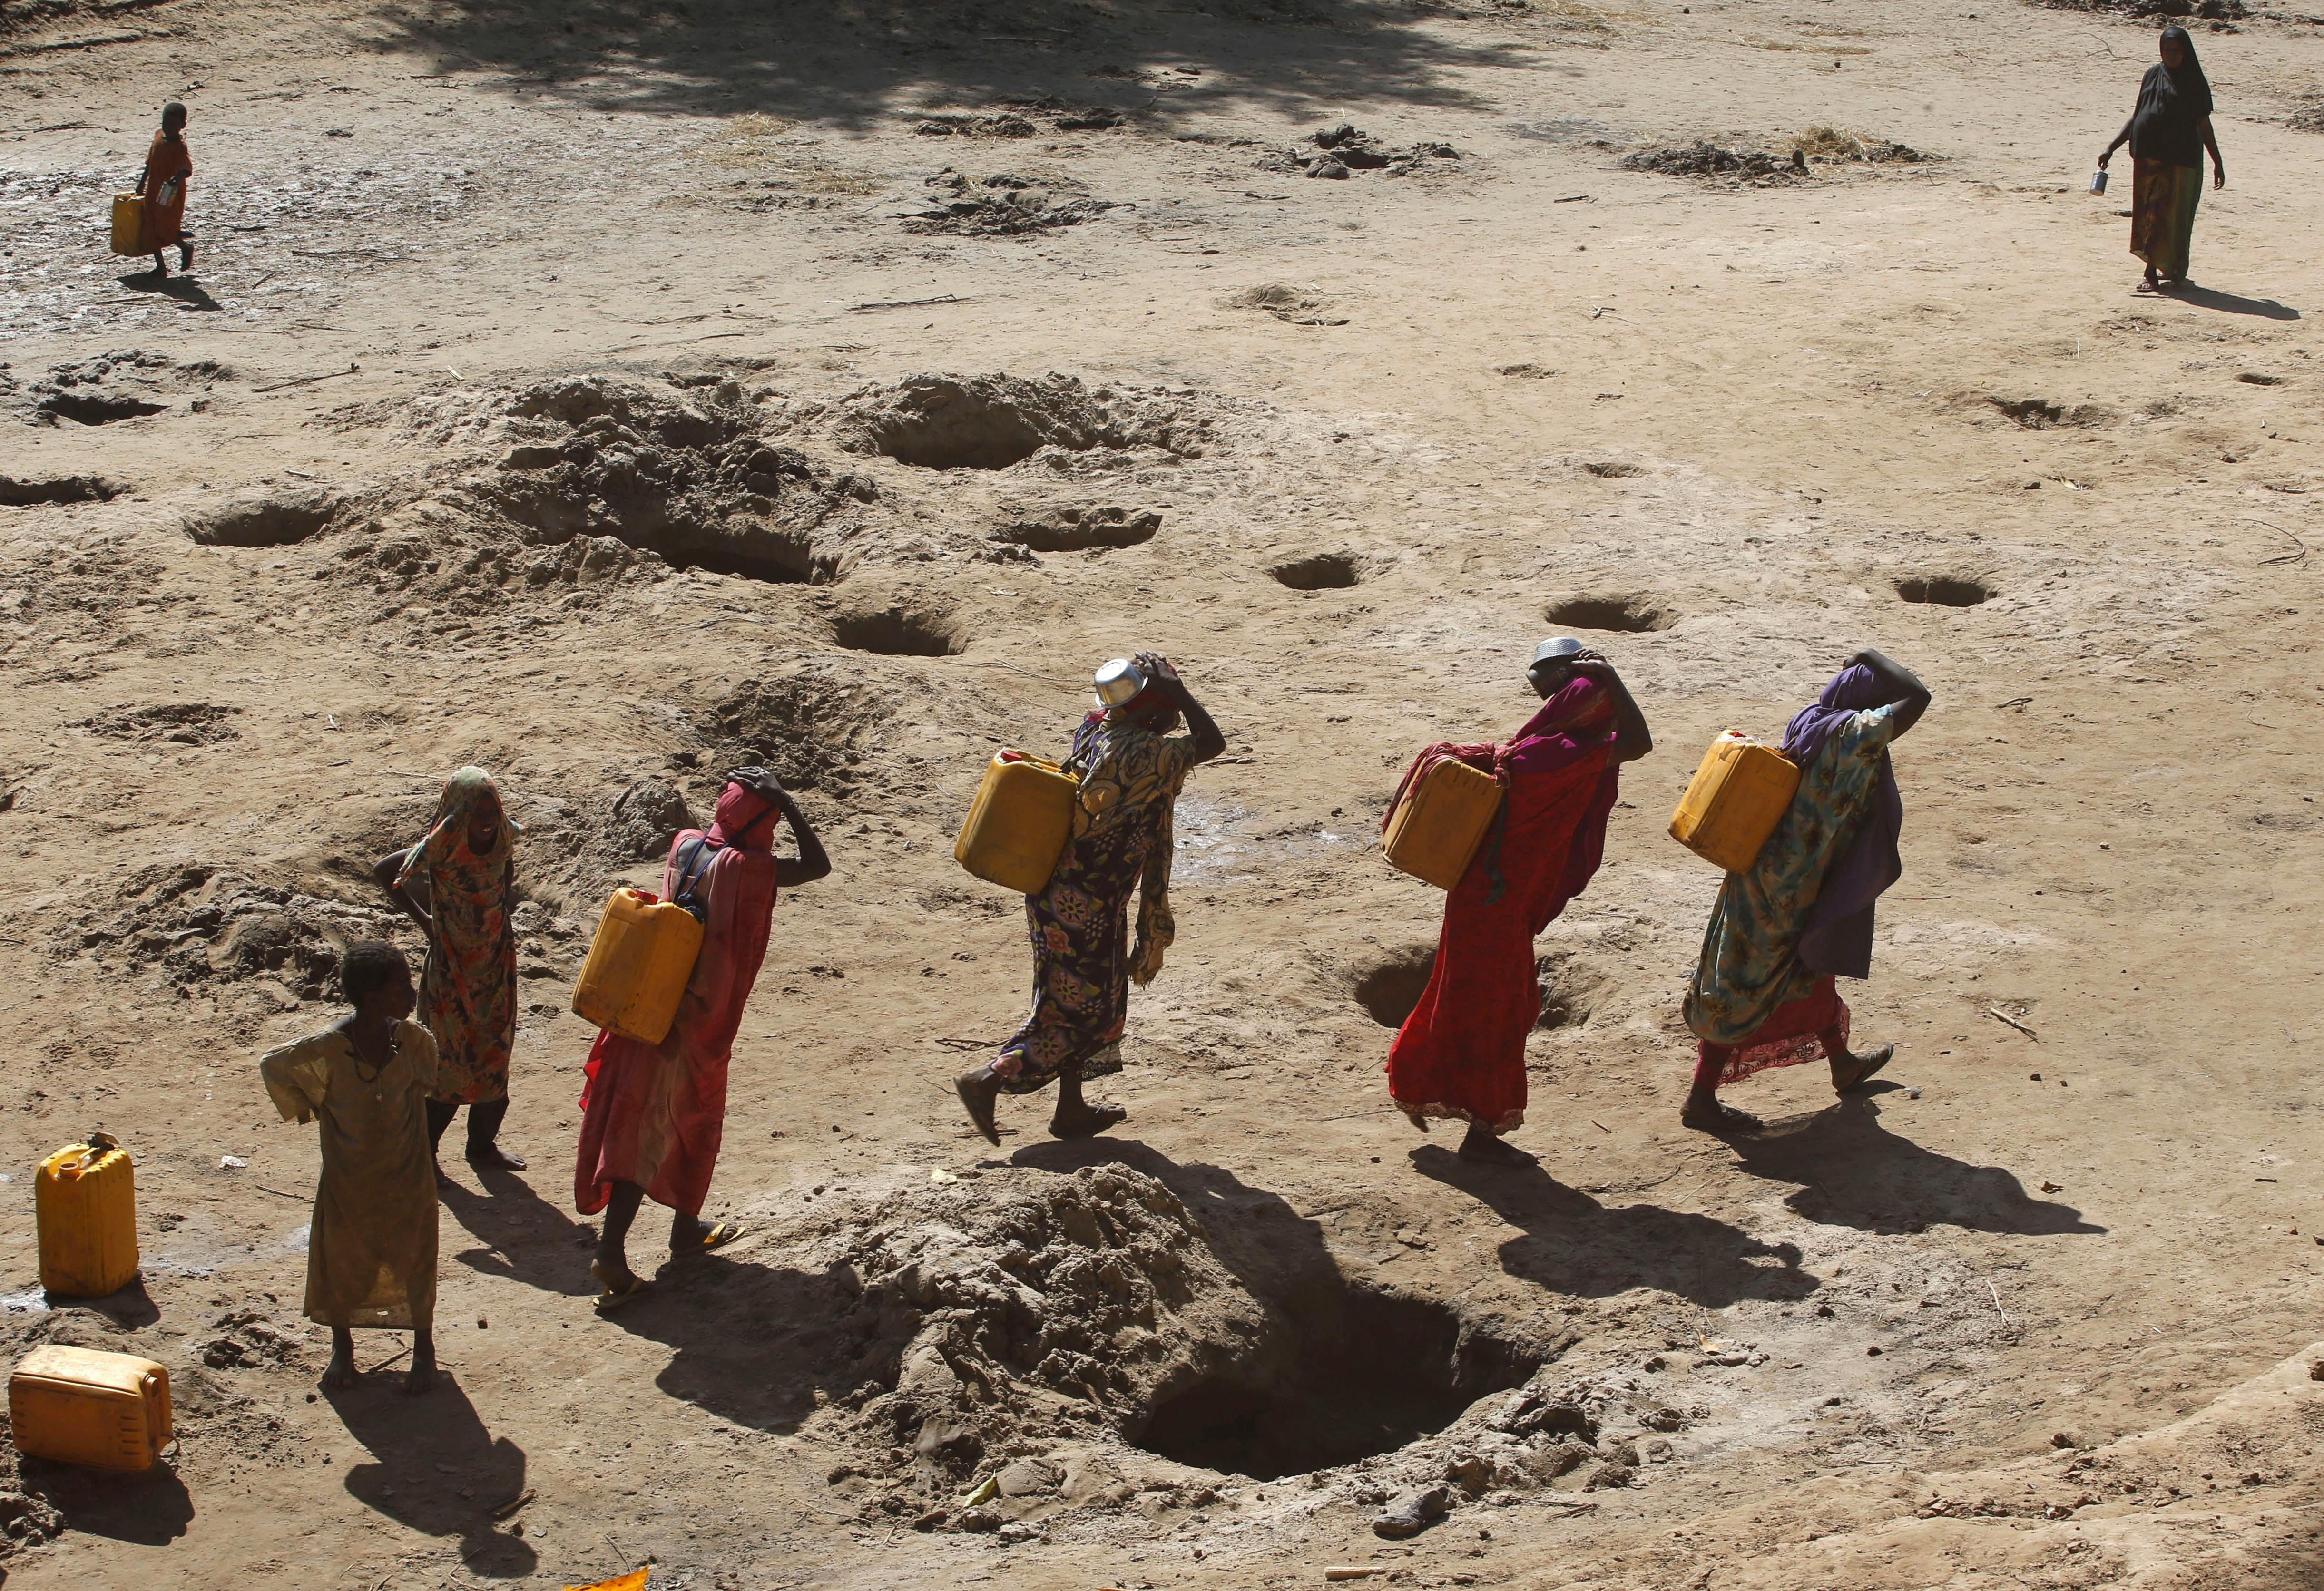 On women's shoulders … women carry jerry cans of water from shallow wells dug in the Shabelle River bed in Somalia, which is dry due to drought.